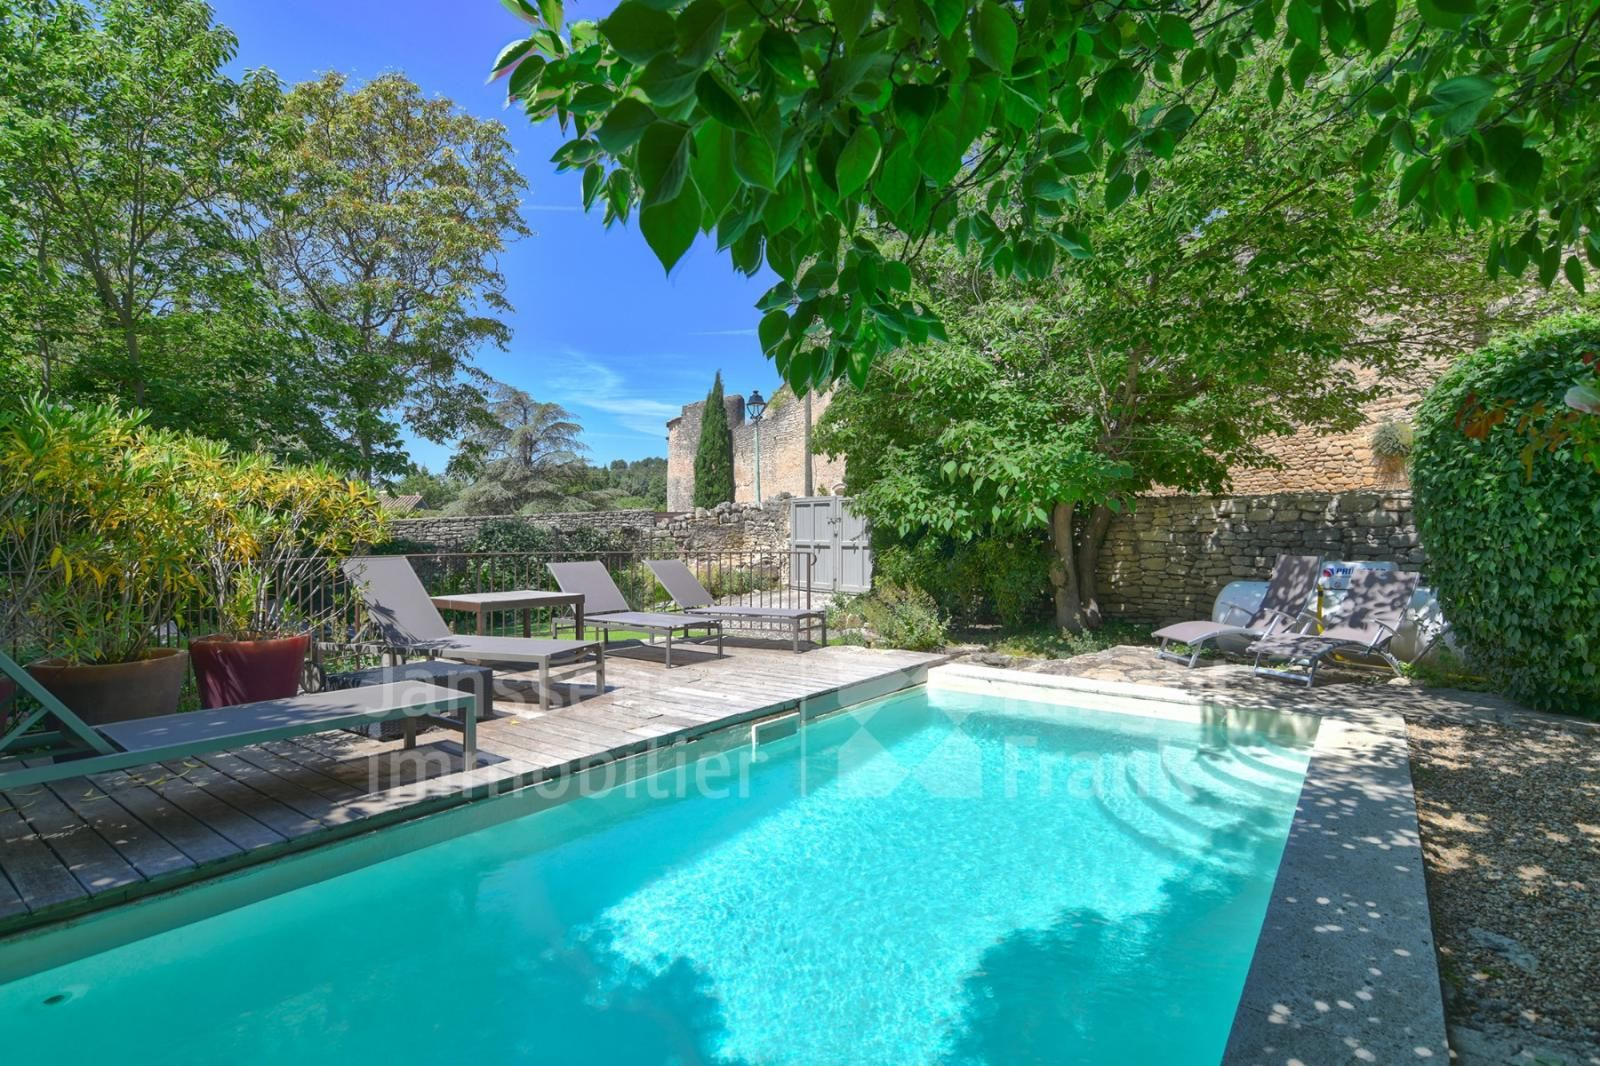 Village House With Swimming Pool And Garden For Sale In The Luberon Janssens Immobilier Provence Village Houses Swimming Pools Pool